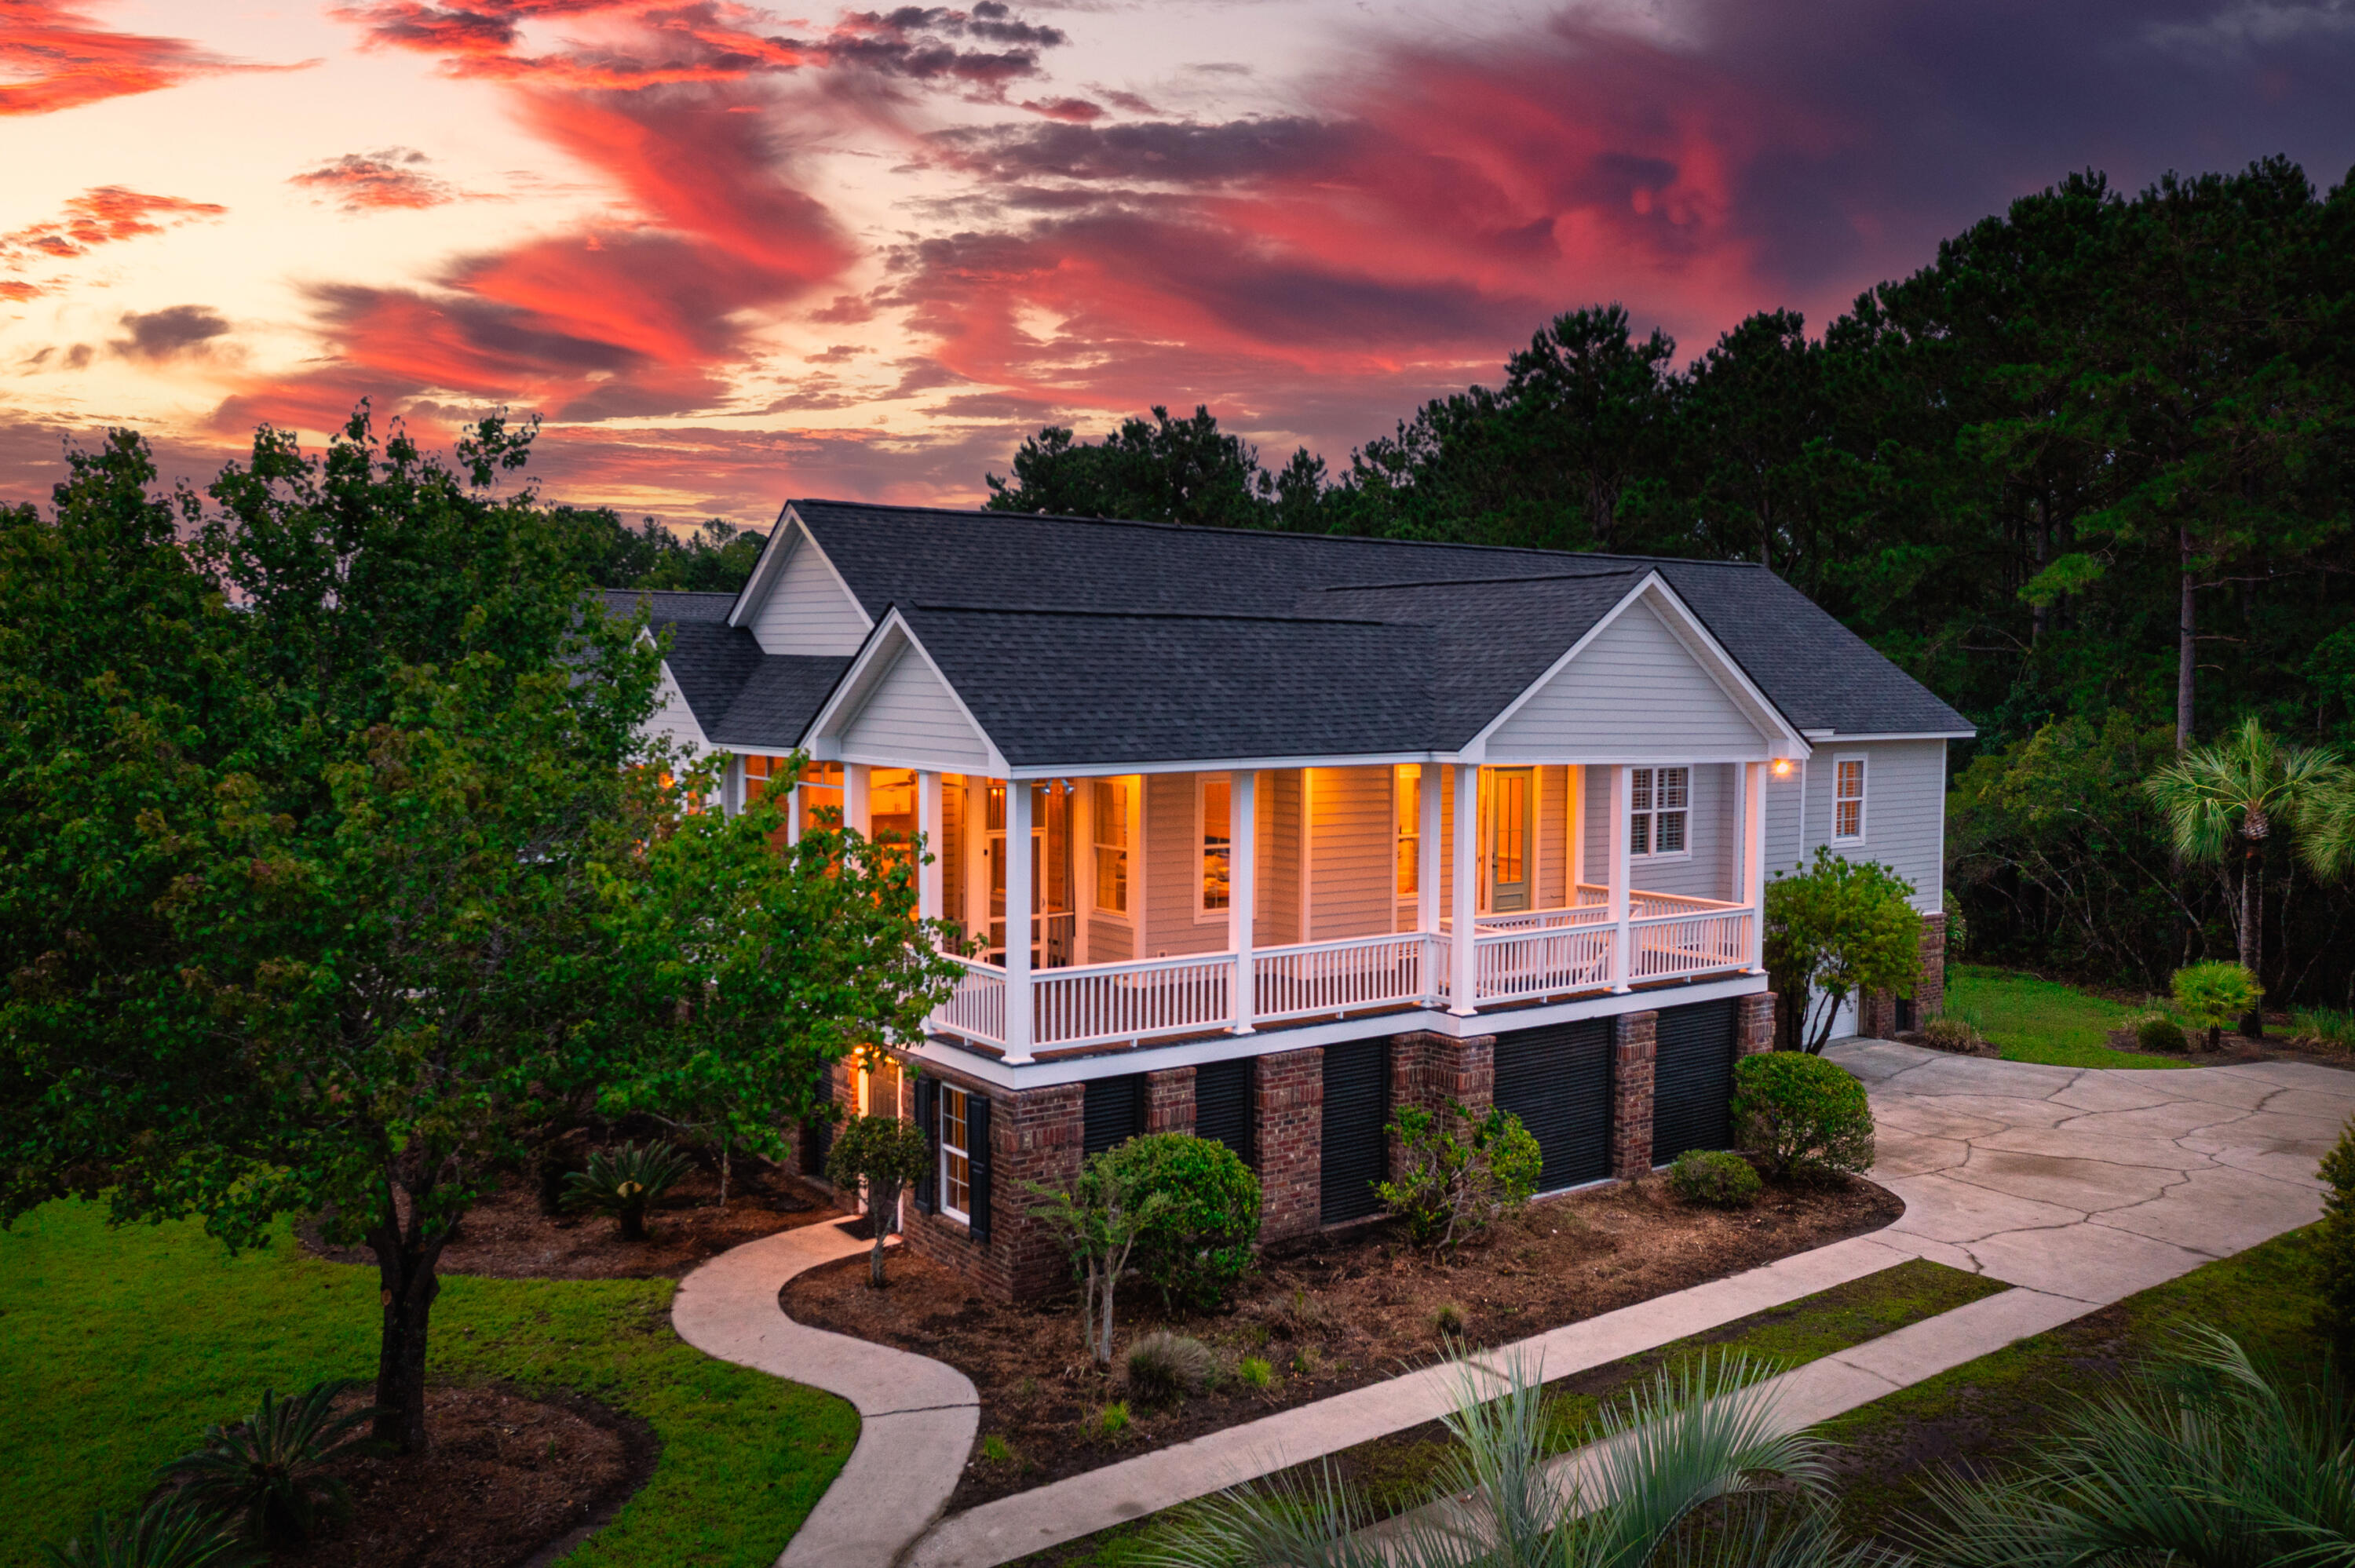 Rivertowne Country Club Homes For Sale - 1725 Rivertowne Country Club, Mount Pleasant, SC - 69